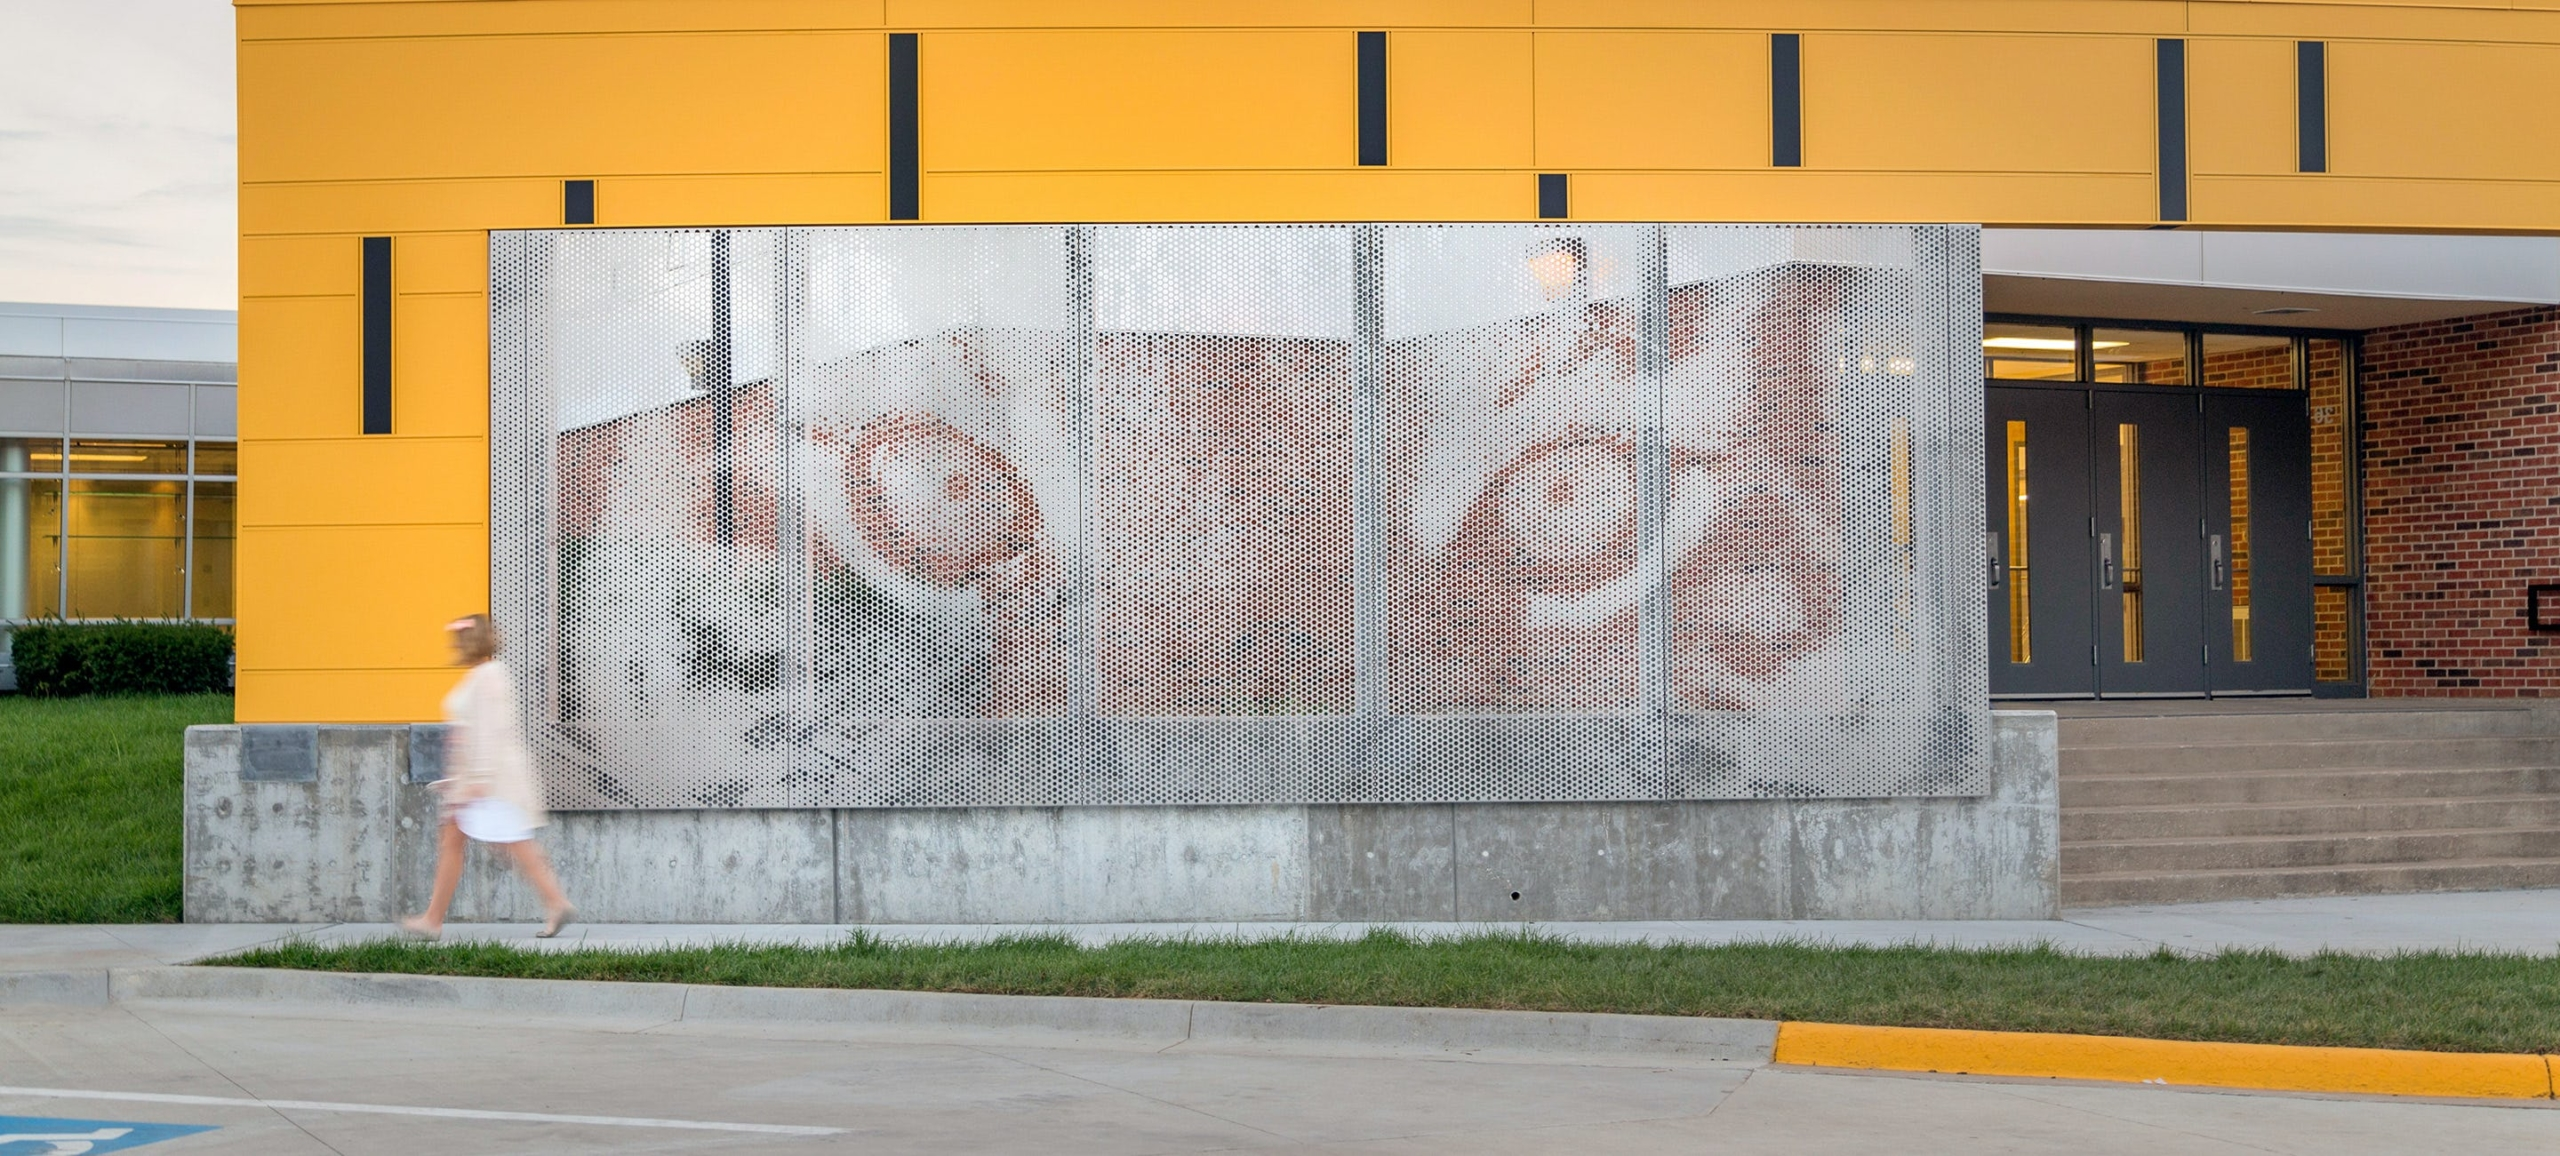 Custom perforated imagery made with ImageWall app by Zahner.